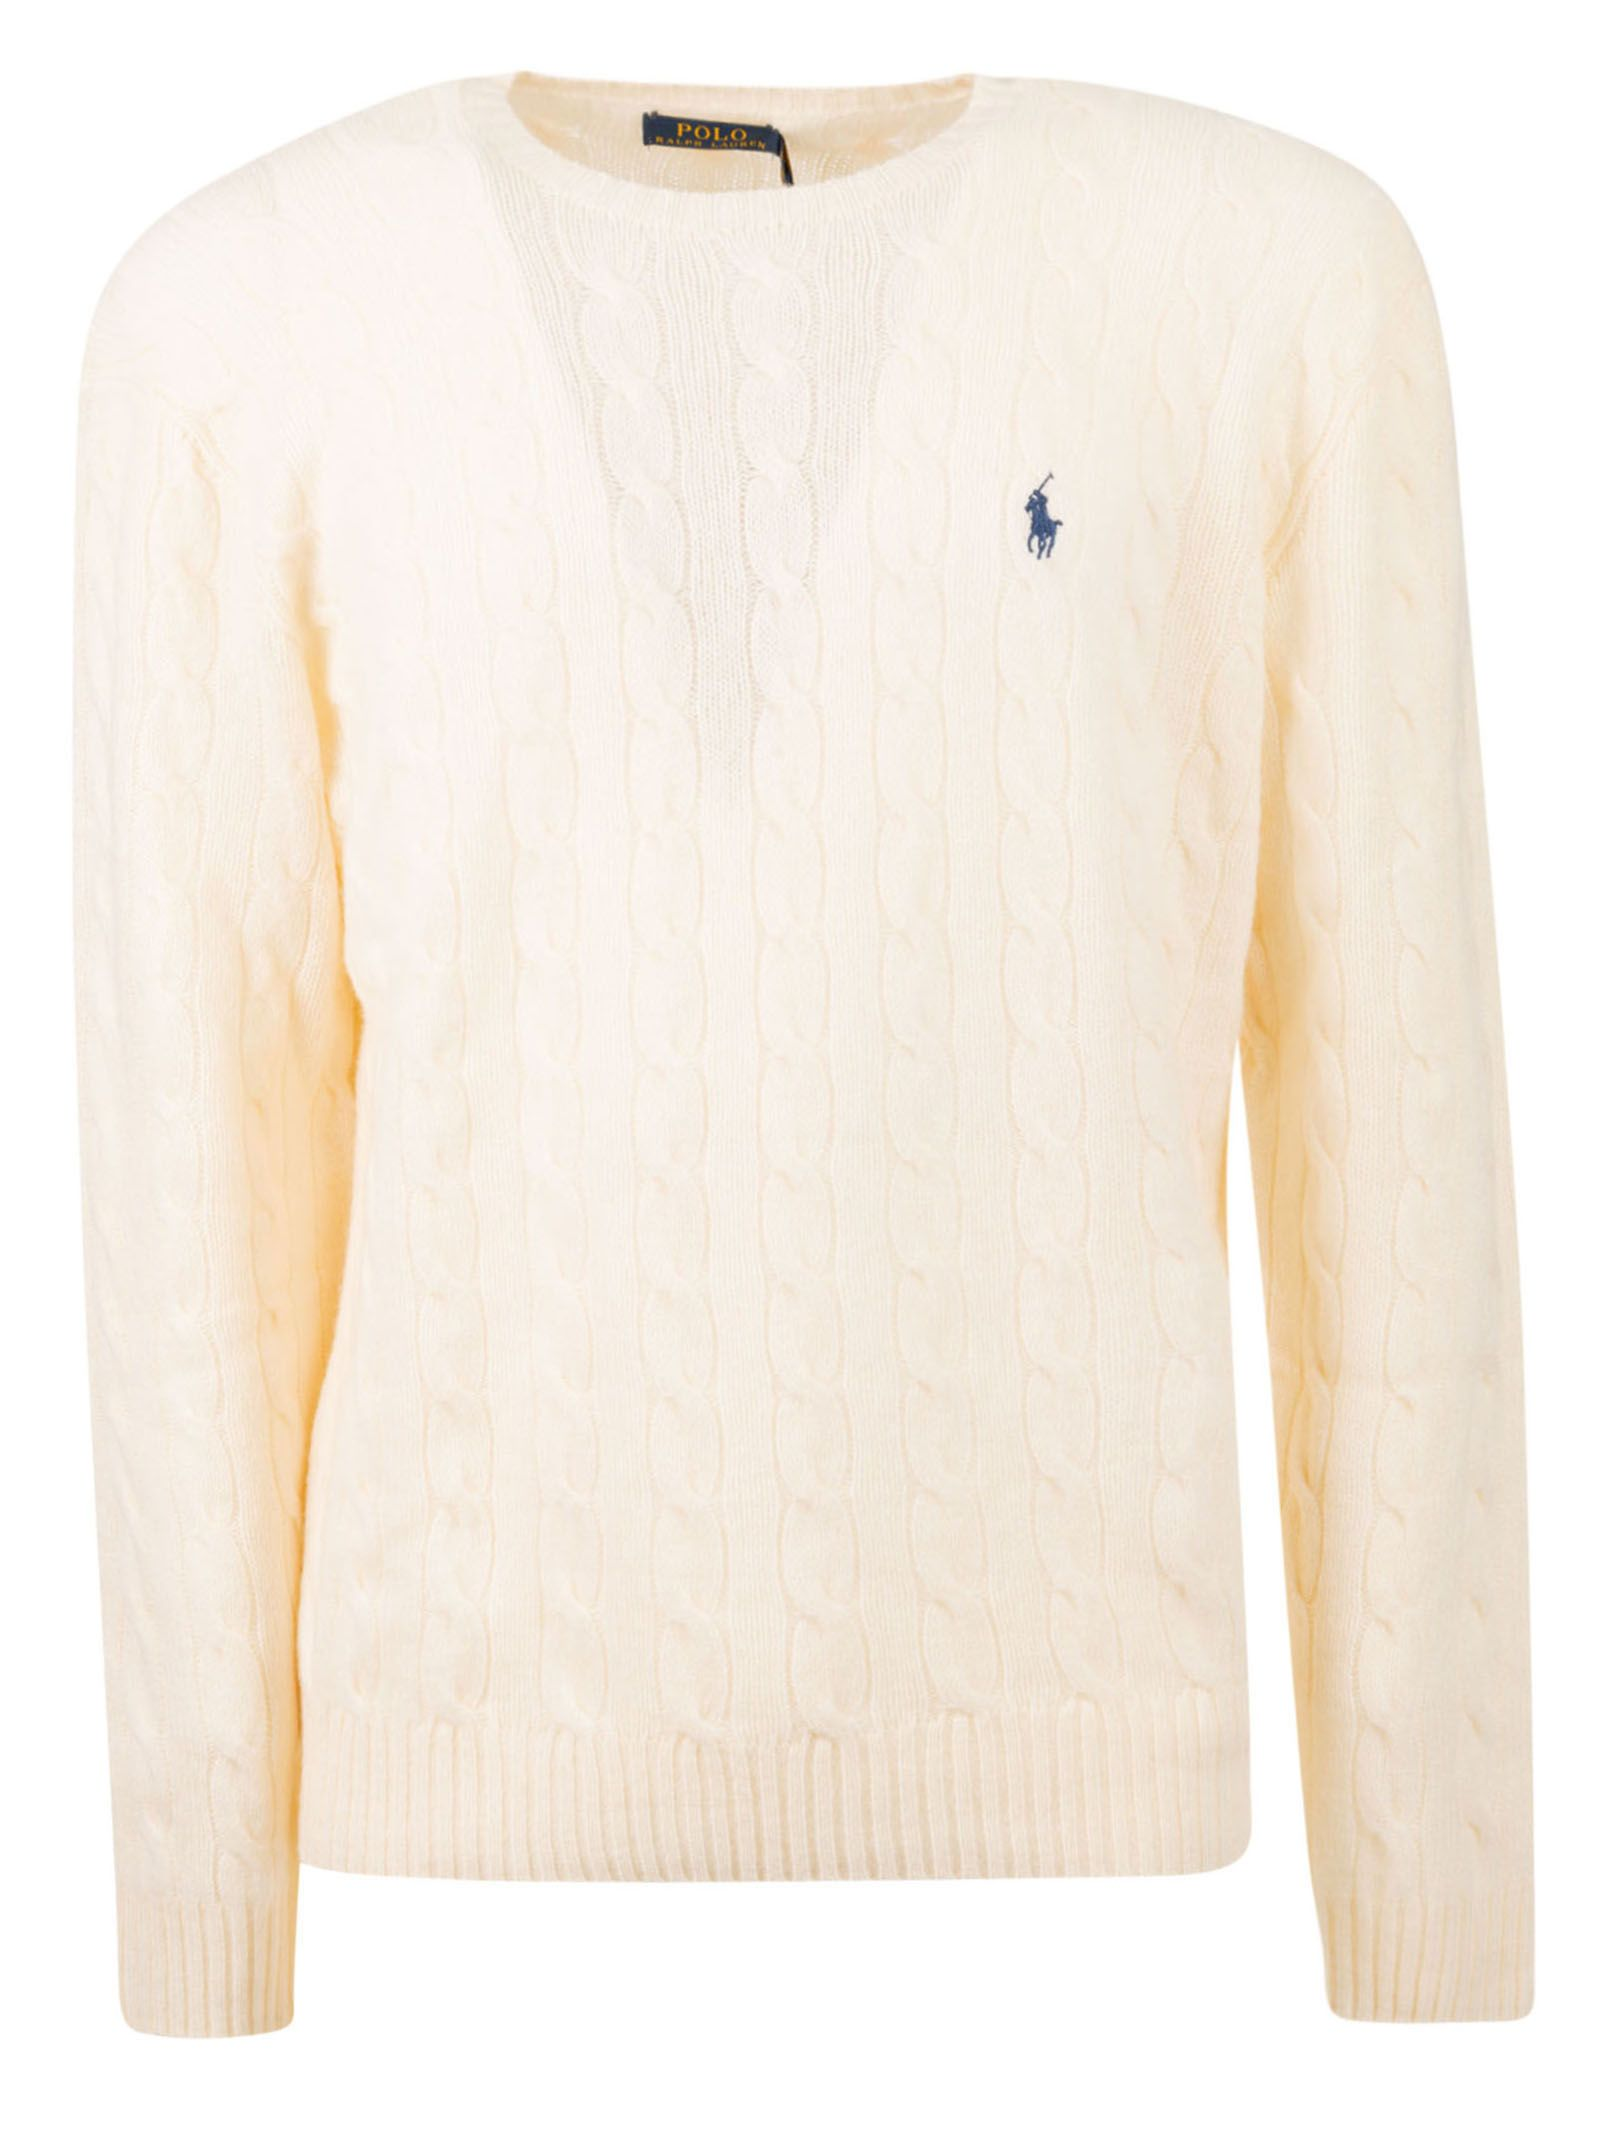 Ralph Lauren Merino Sweater